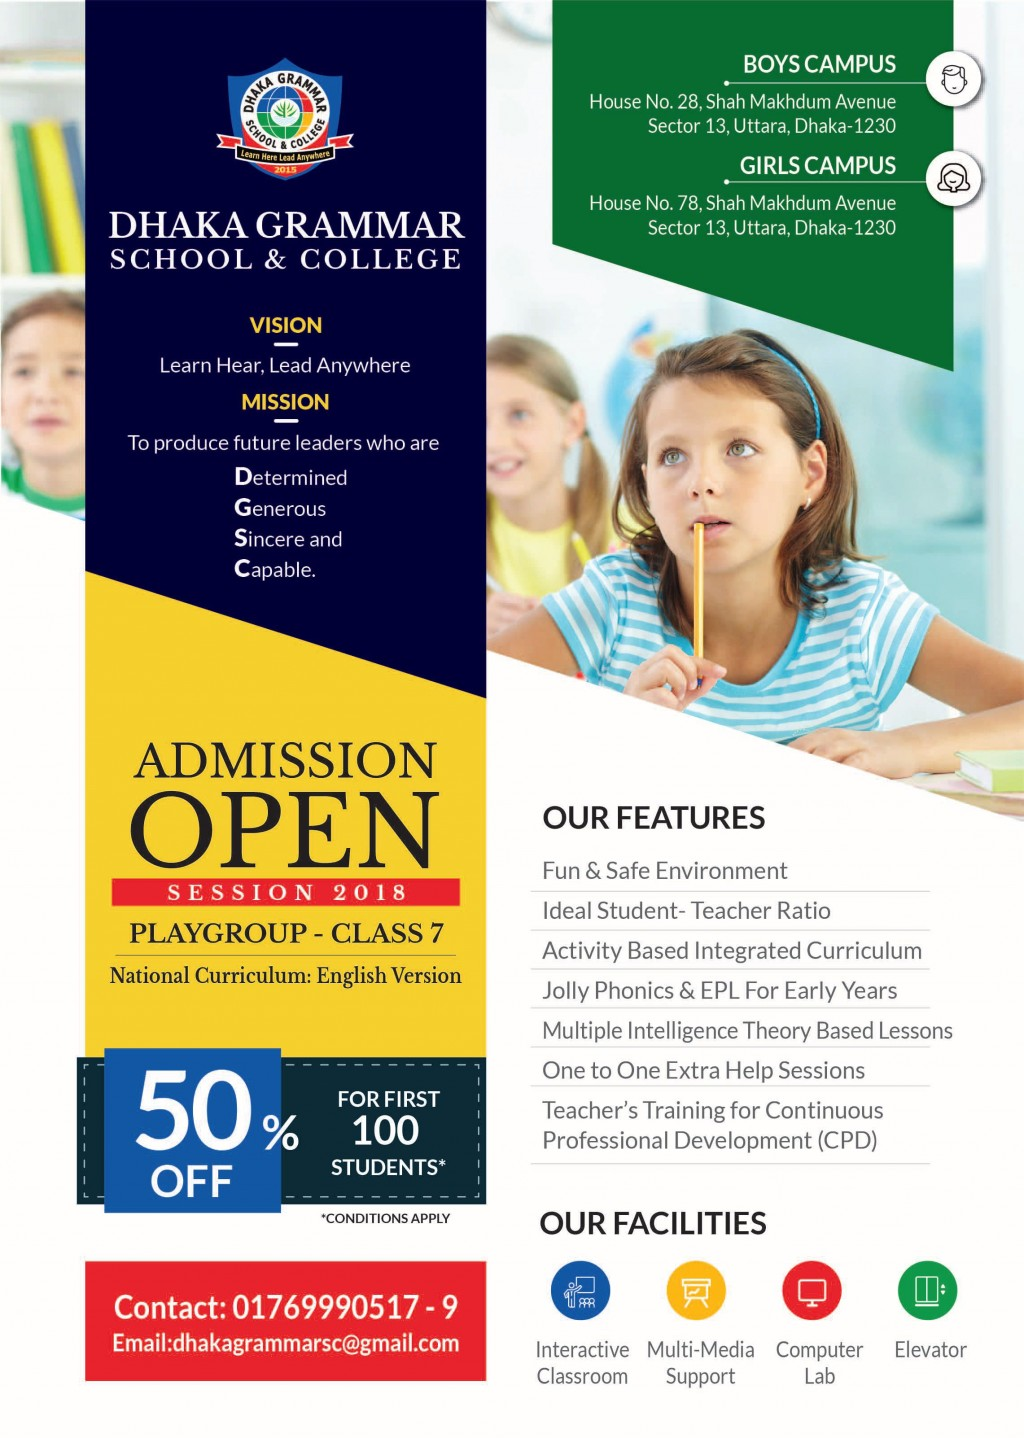 001 Outstanding School Open House Flyer Template Highest Clarity  Elementary Free WordLarge